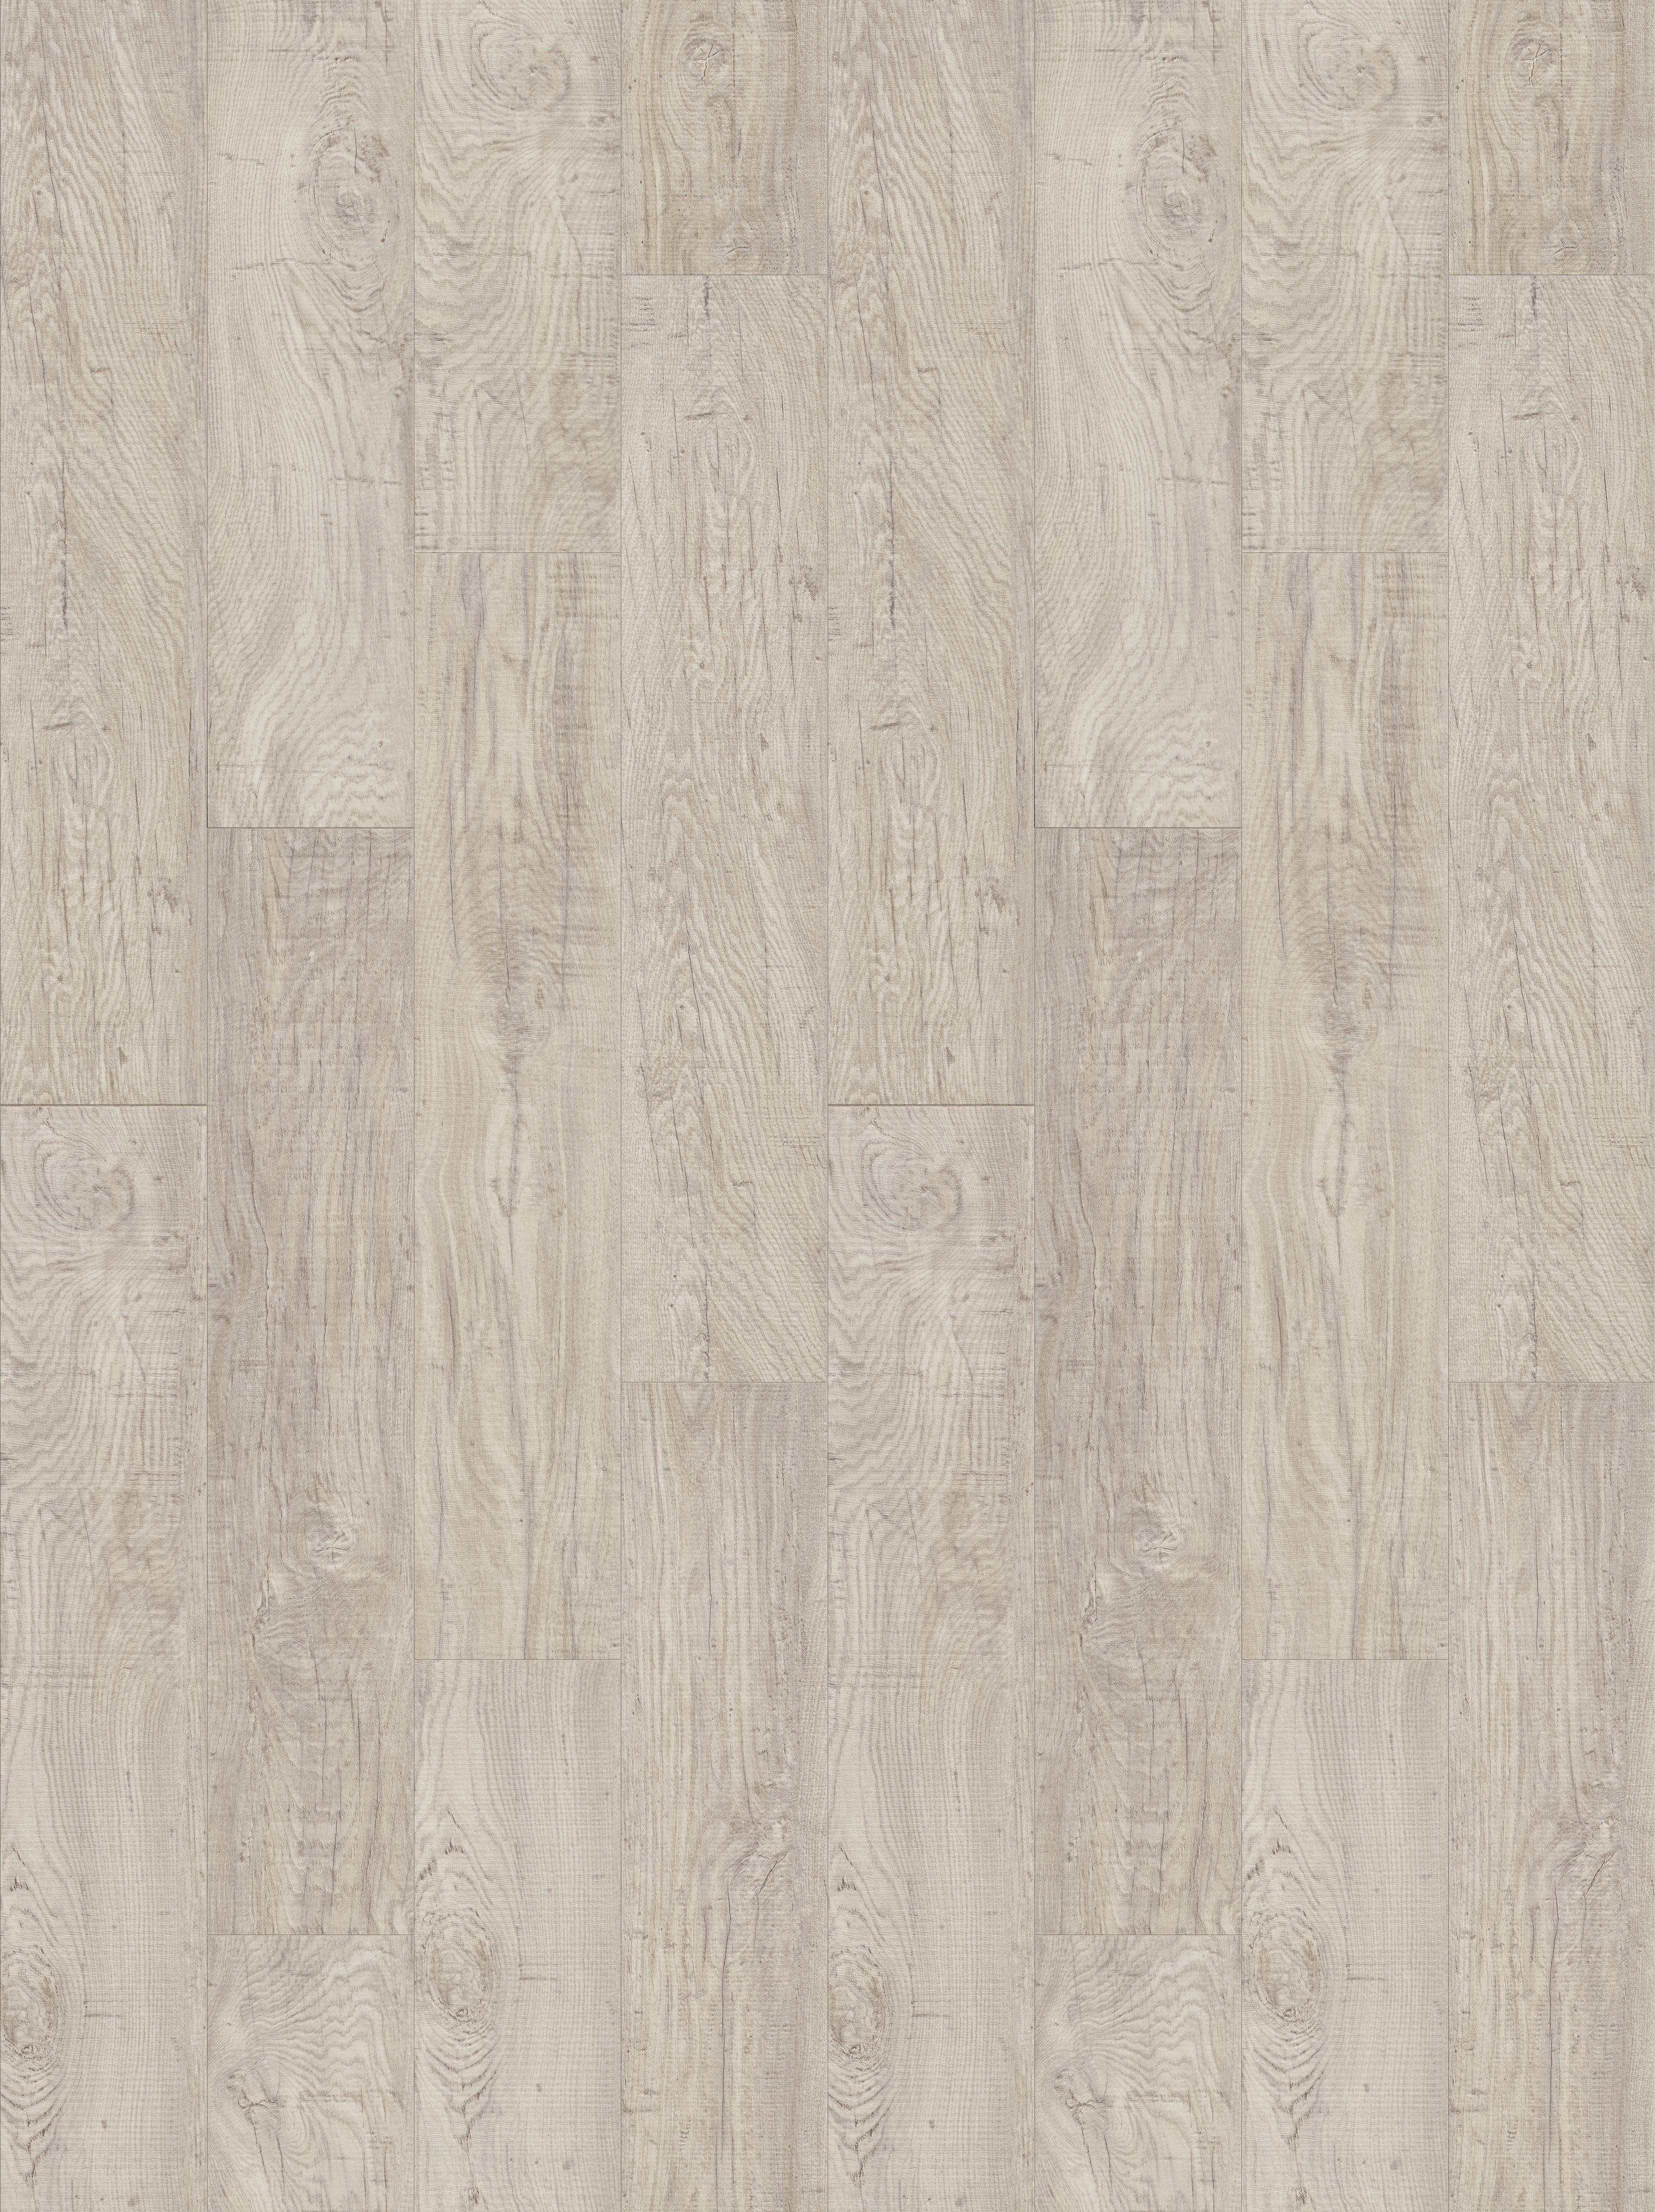 Allura flex 055 wood loose lay tiles forbo flooring systems 1911 blond rough oak dailygadgetfo Images